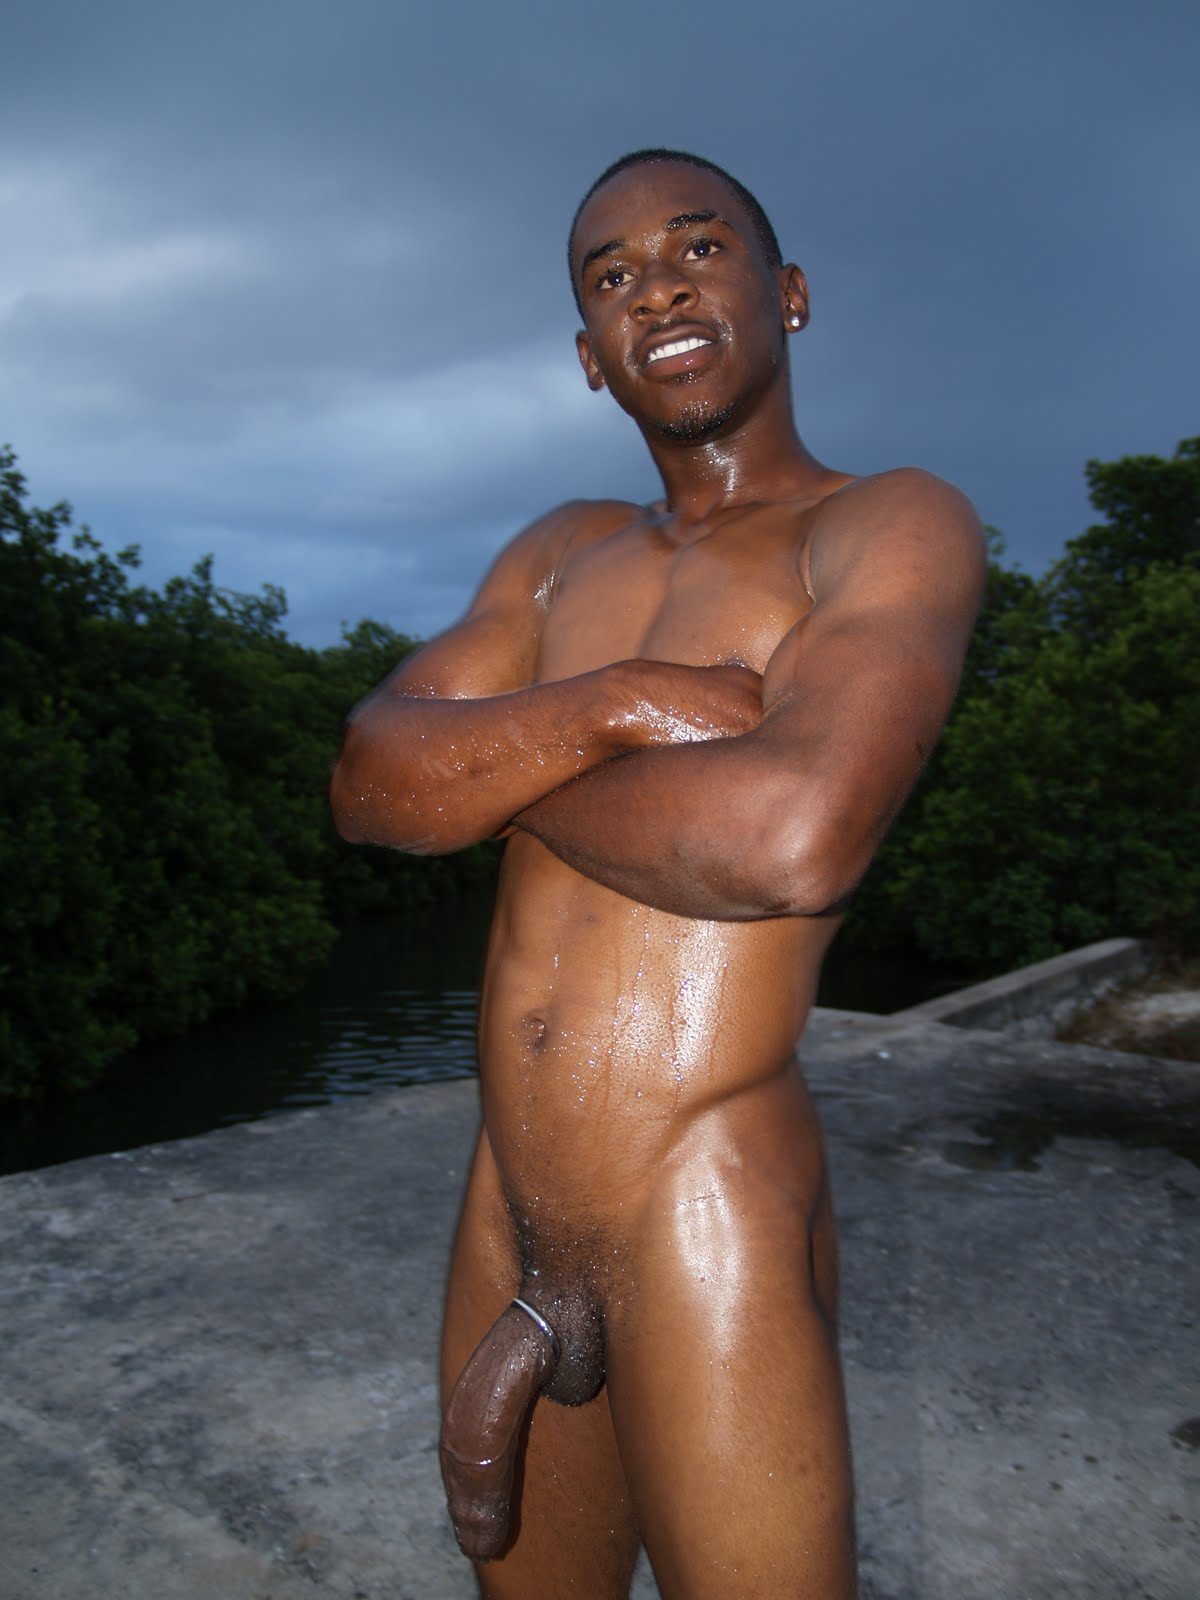 All clear, Black male models naked me, please